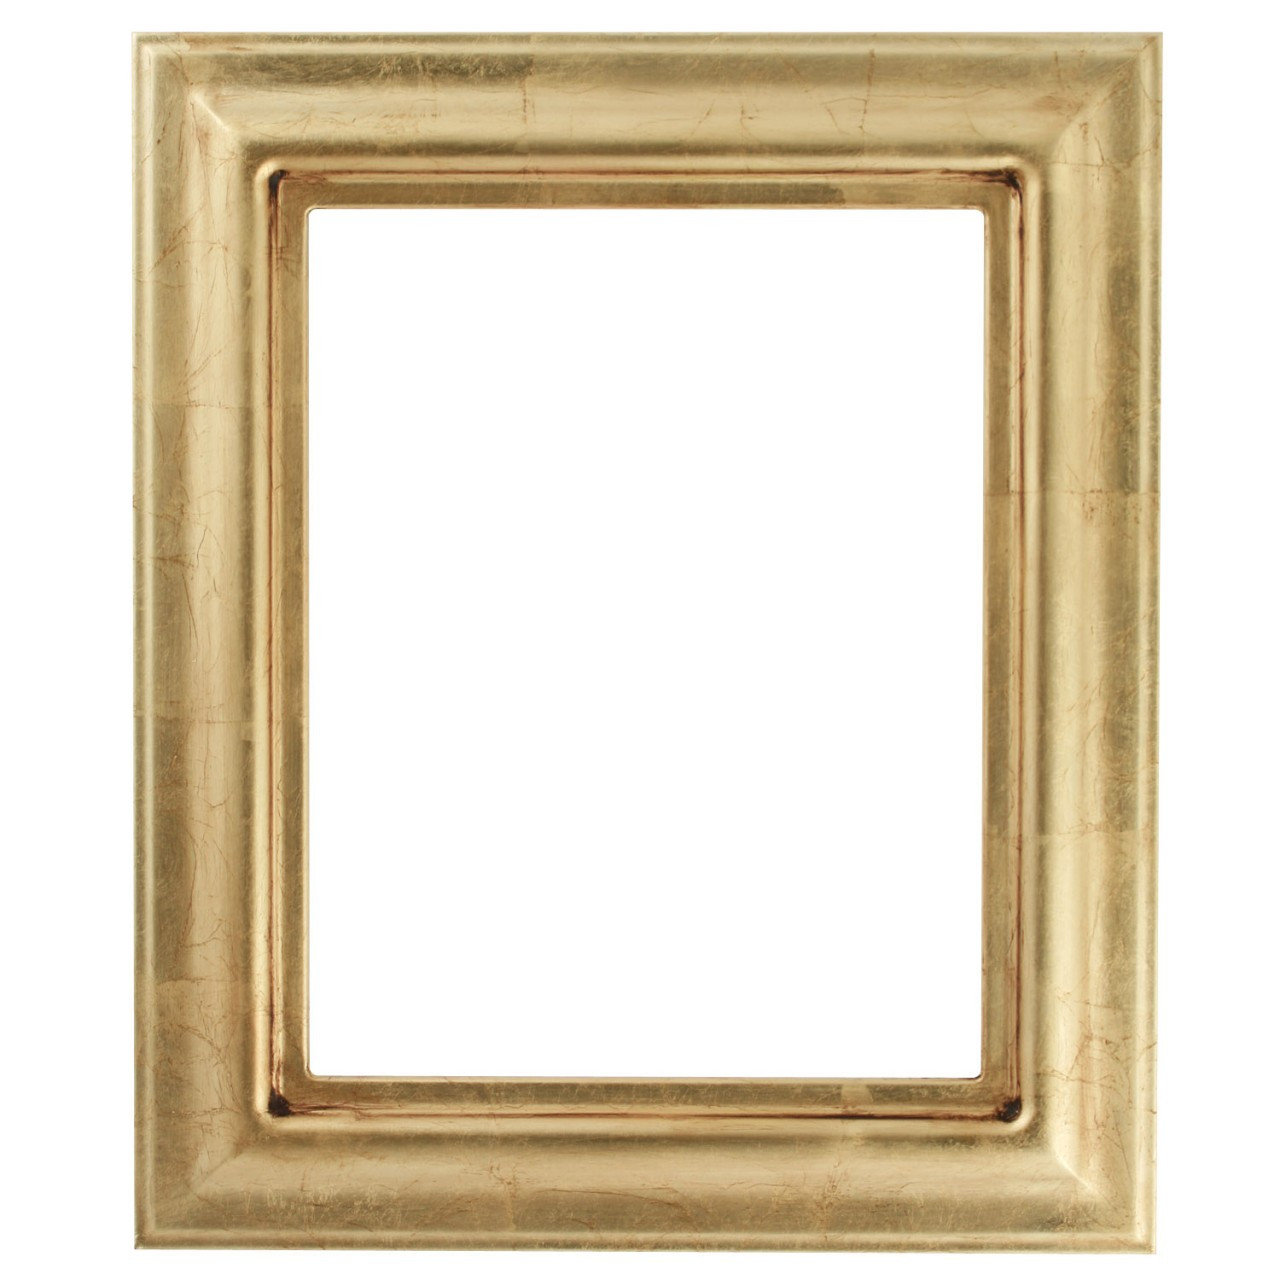 Rectangle frame in gold leaf finish simple gold picture frames see 2 more pictures jeuxipadfo Images